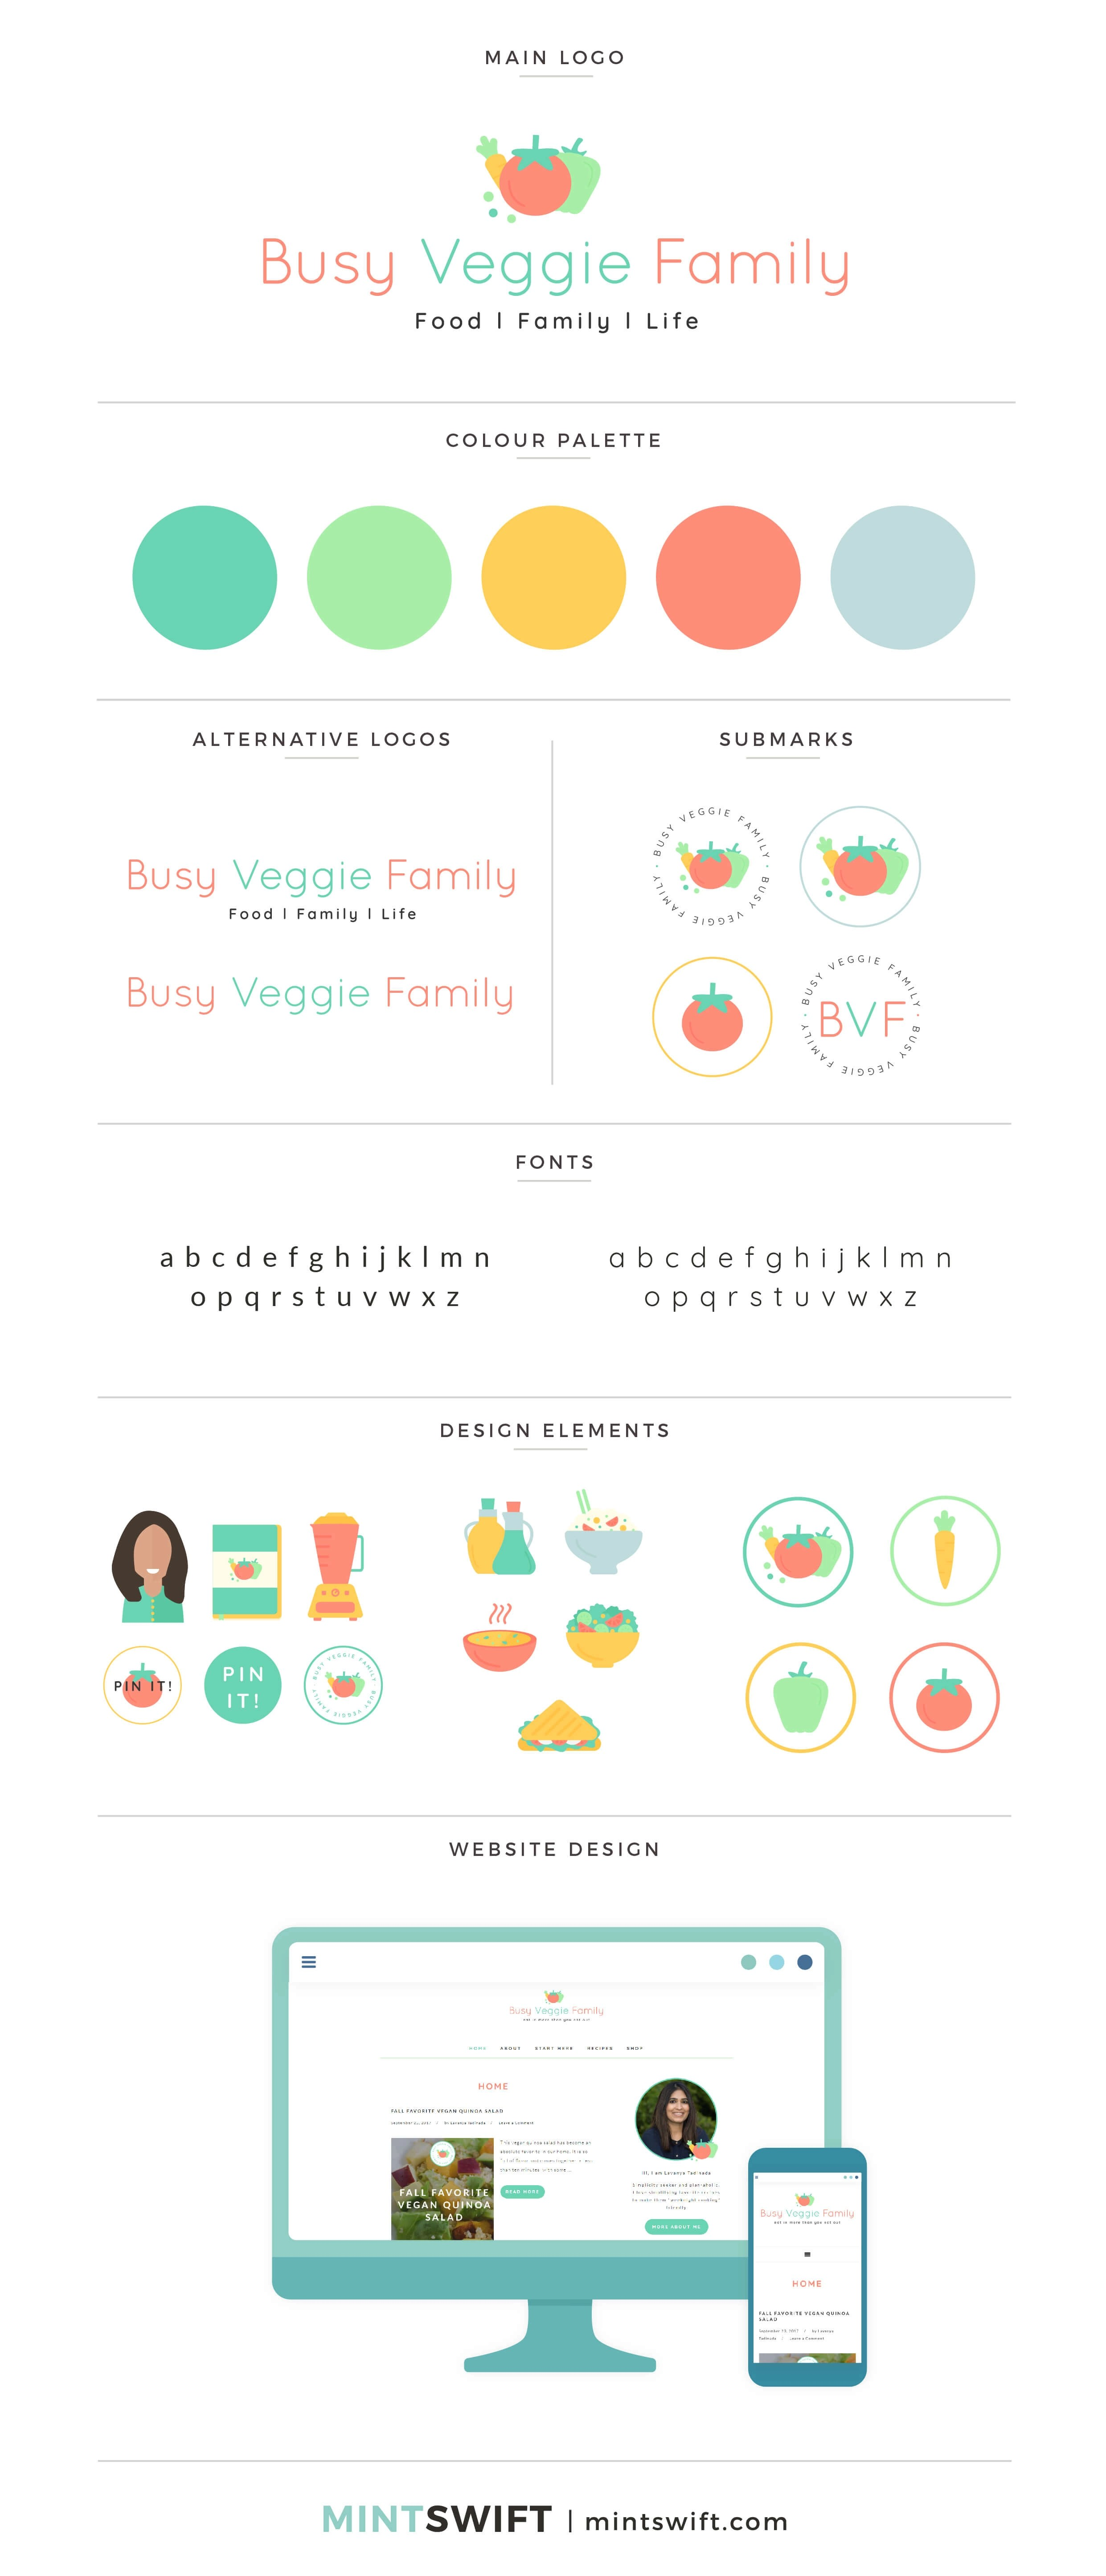 Busy Veggie Family - Brand & Website Design - MintSwift